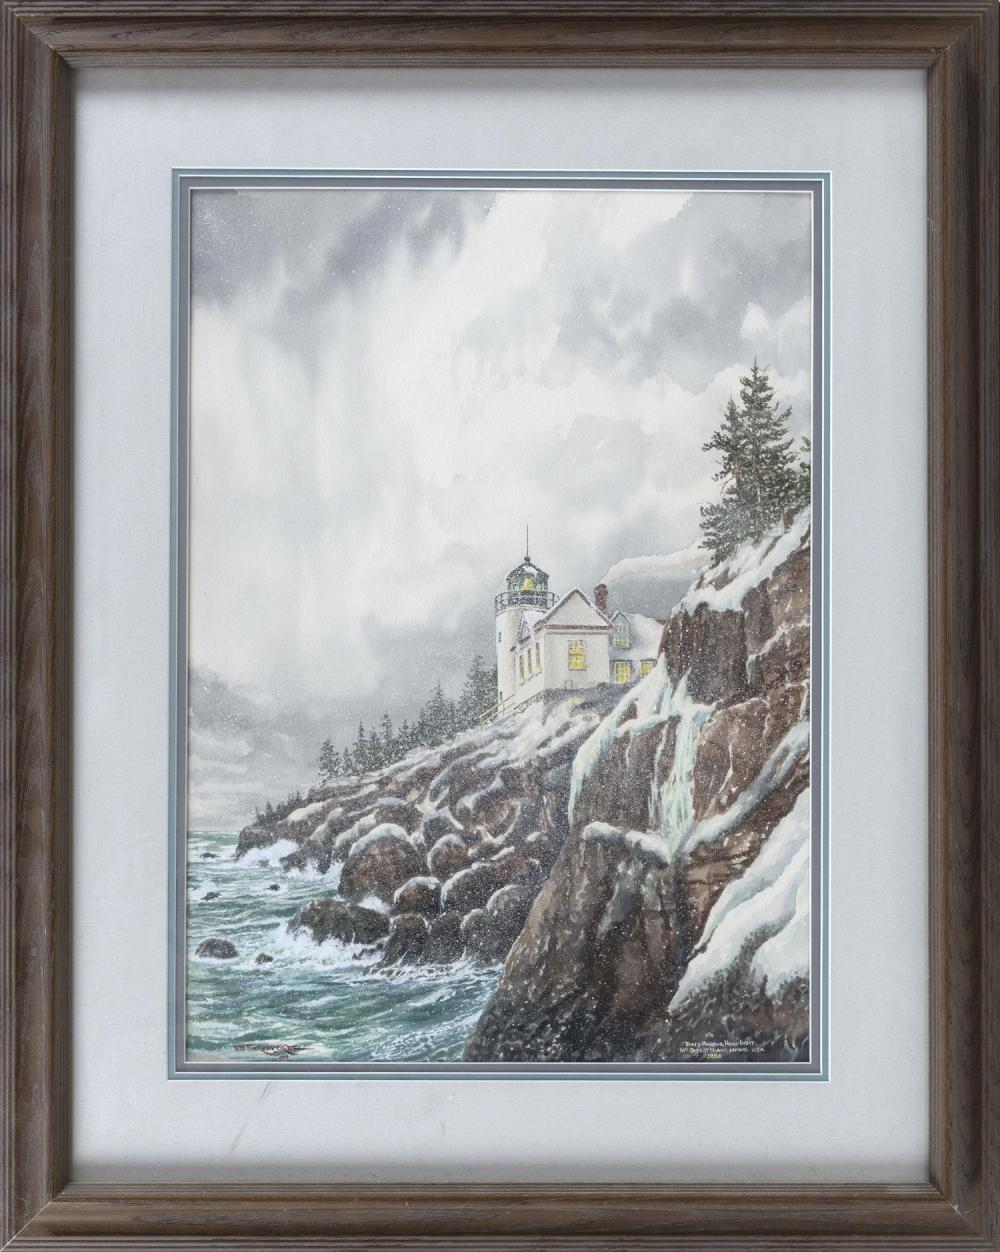 """WATERCOLOR """"BASS HARBOR HEADLIGHT MOUNT DESERT ISLAND"""" Seen in winter. Signed lower right, possibly """"Will Farnivort"""". 21.5"""" x 15"""" si..."""